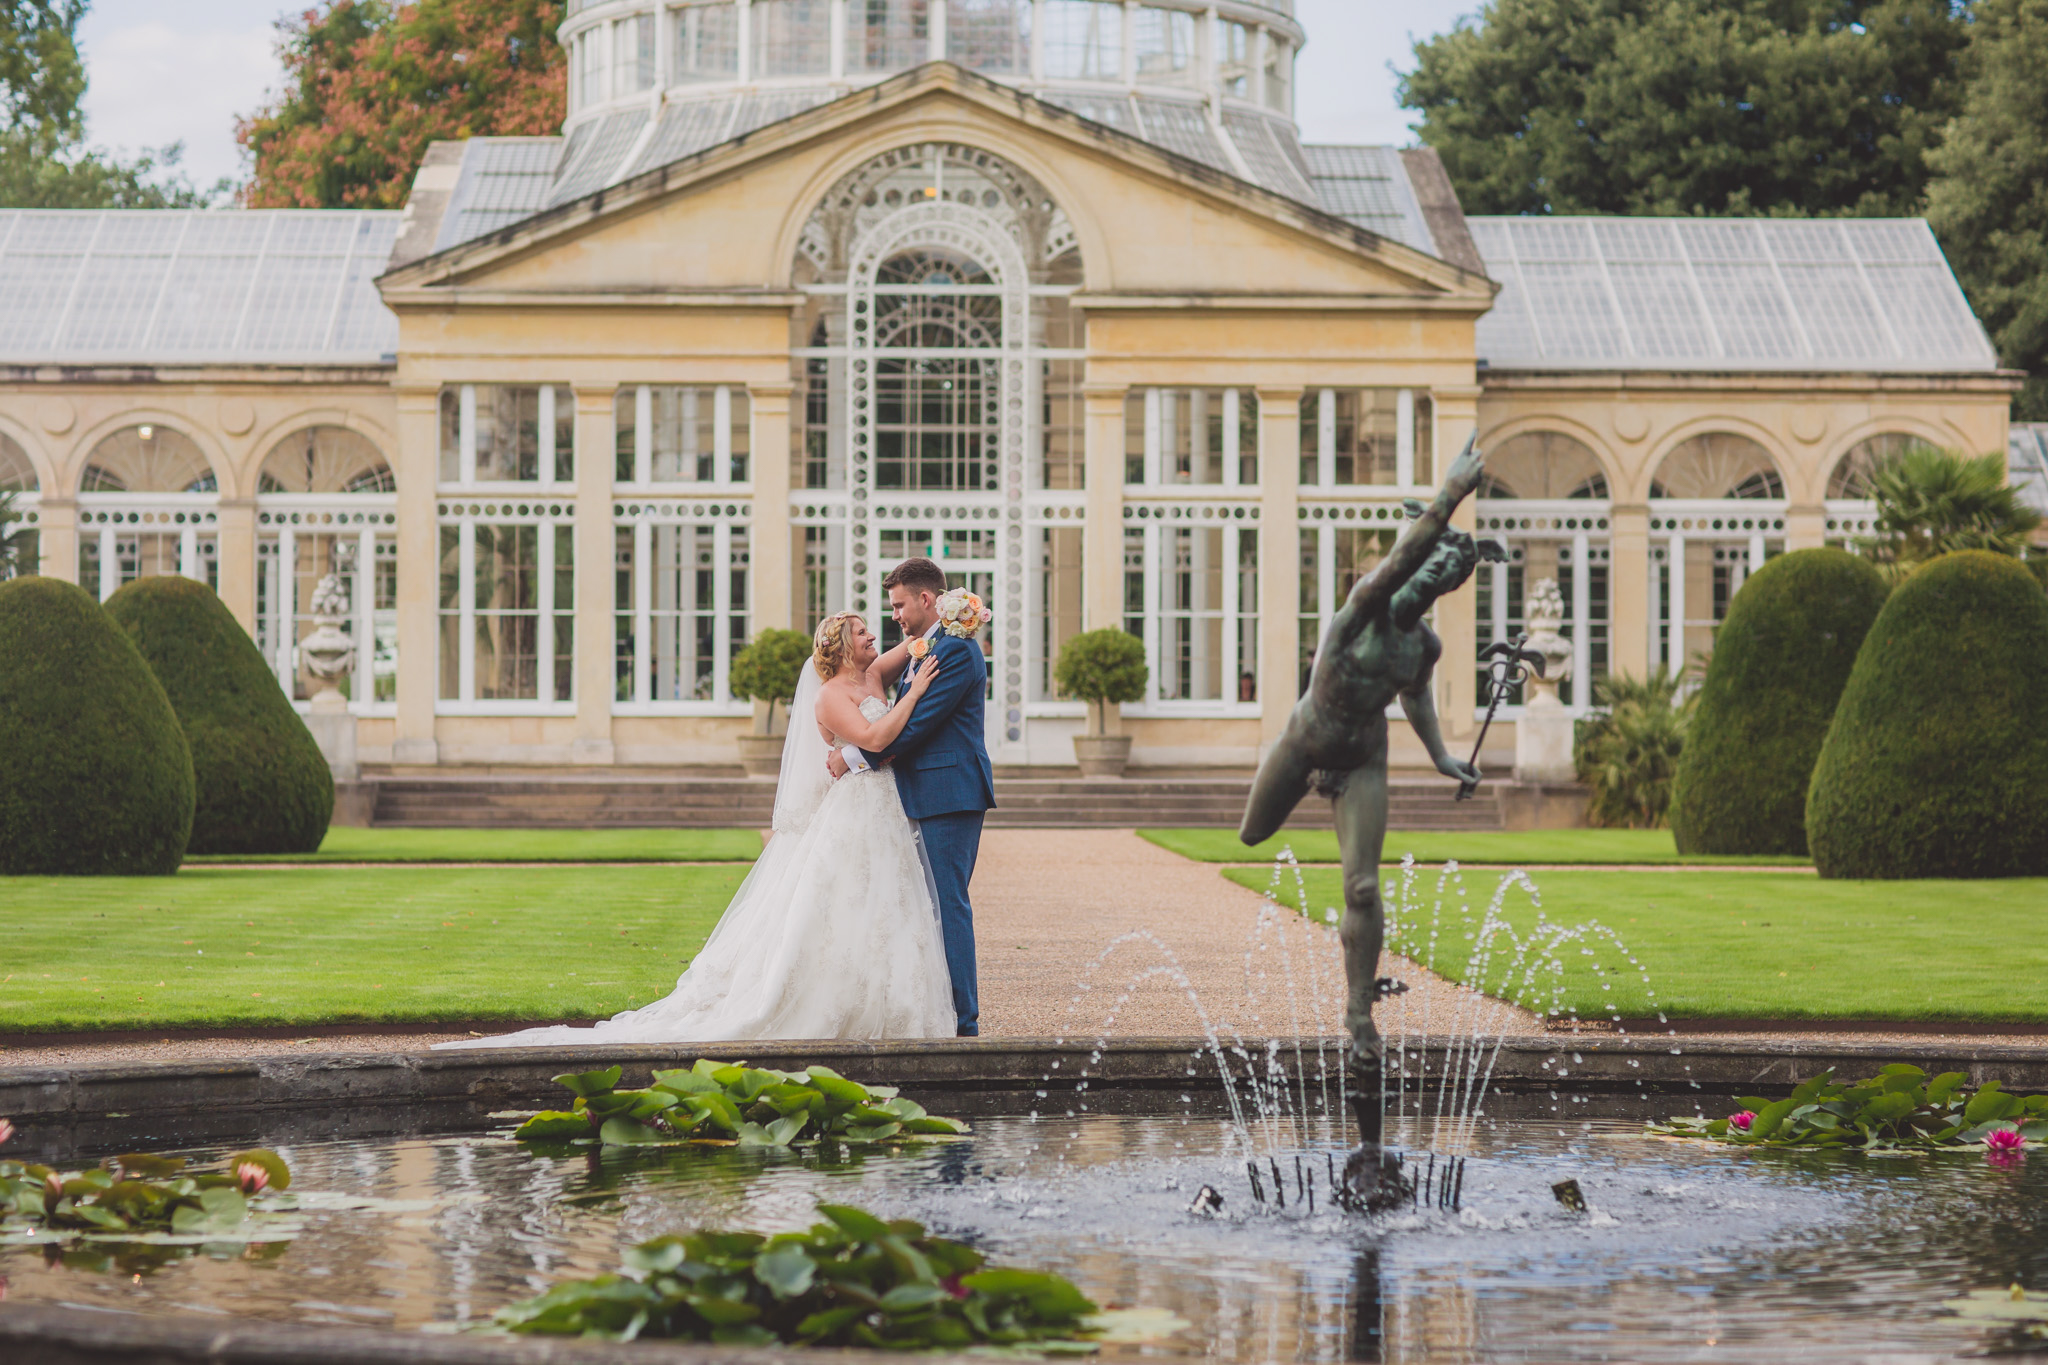 The Great Conservatory Syon Park Wedding Photography: Sandra and Nick